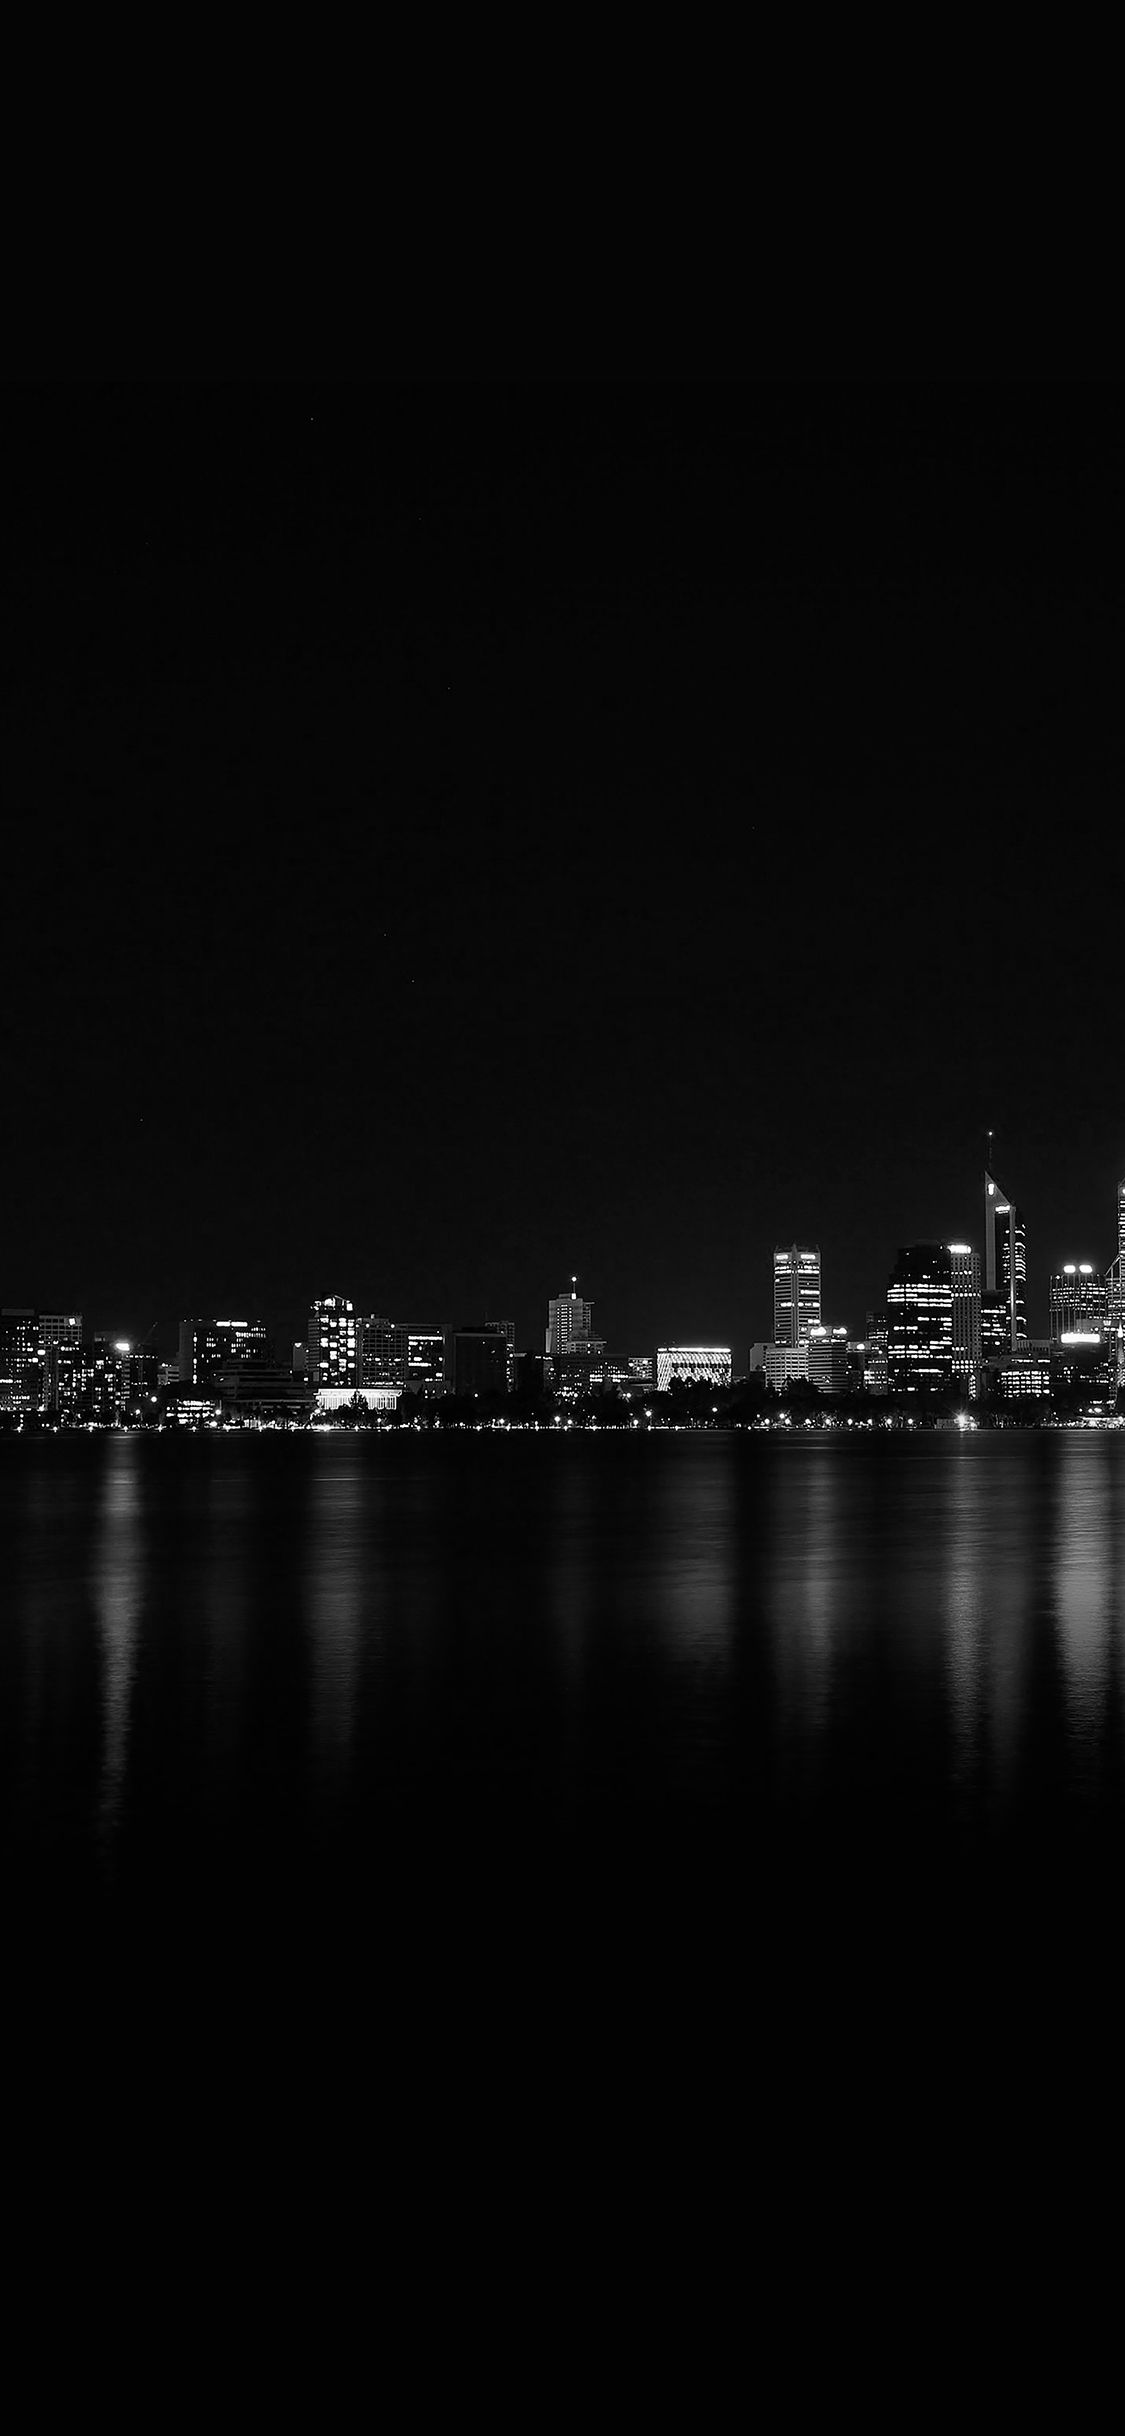 Mk52 City Night Dark Skyline Architecture River Via Http Iphonexpapers Com Wallpapers For Iphone Dark Phone Wallpapers Dark Wallpaper Iphone Dark Wallpaper